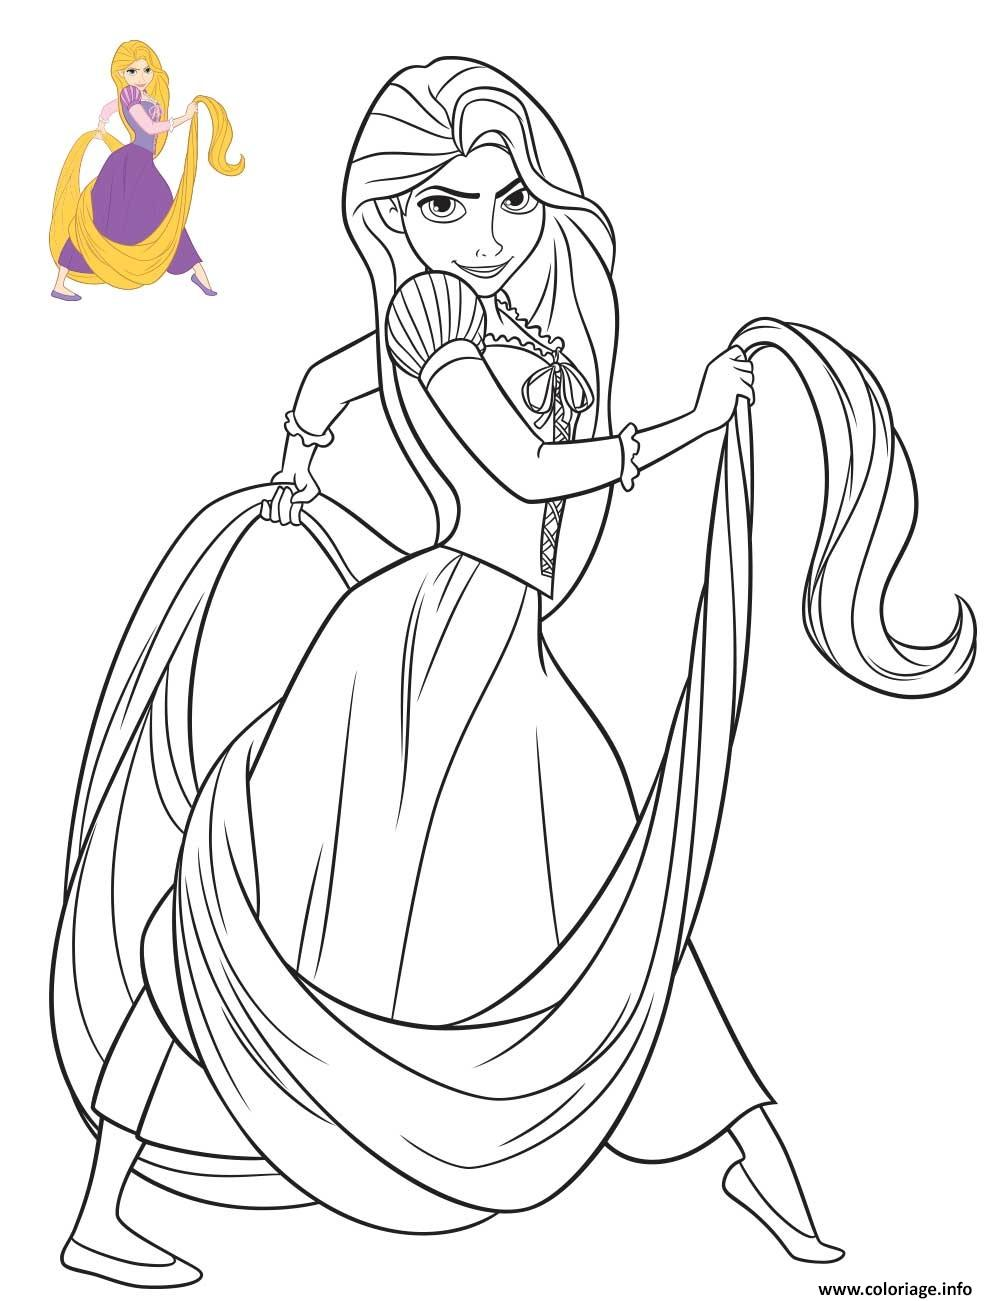 Coloriage princesse disney - Coloriage disney ...